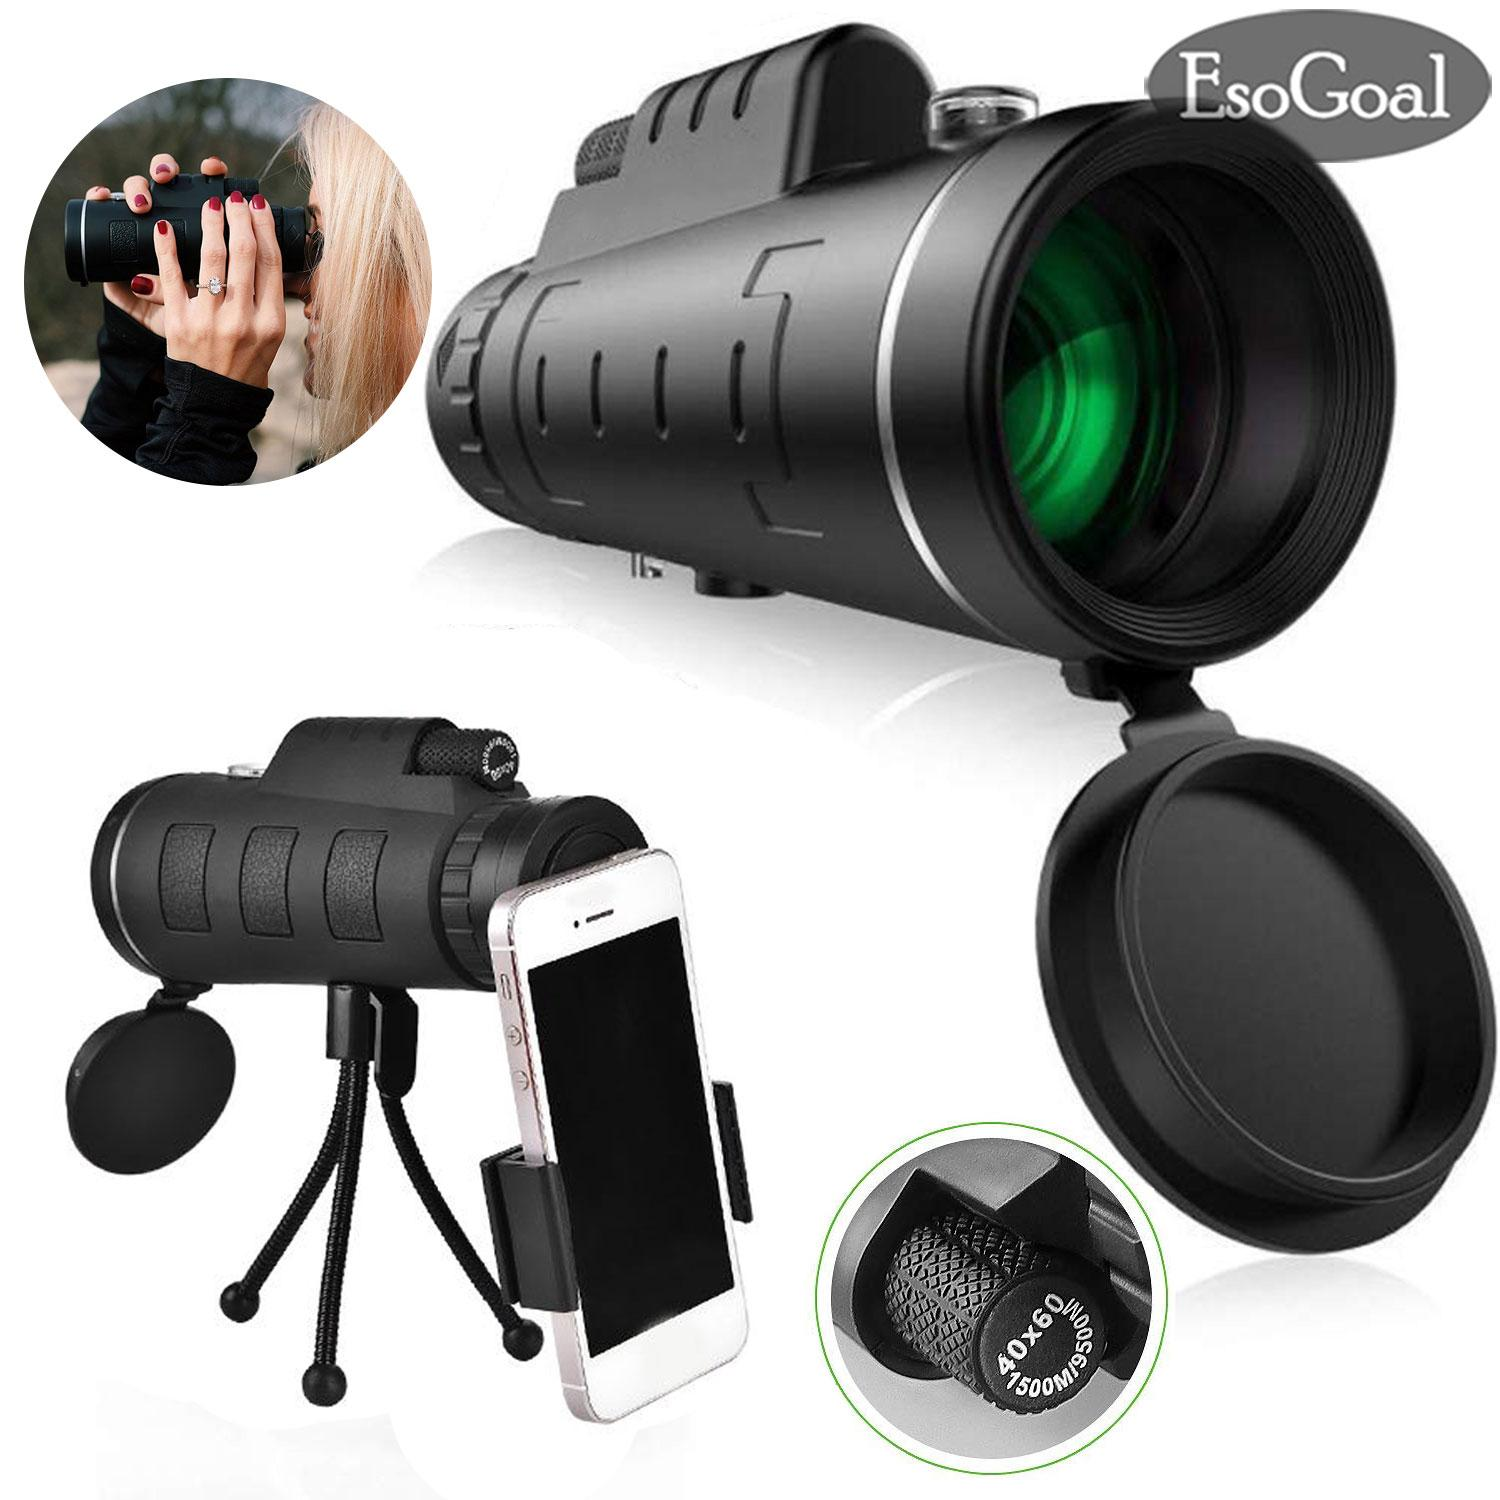 Esogoal Mini Monocular Telescope Super Zoom 40 X 60 Dual Focus Night Vision Hd Monocular Prism Scope With Compass, Phone Clip Tripod, Phone Holder For Stargazing, Camping, Bird Watching, Hiking And Sports By Esogoal.